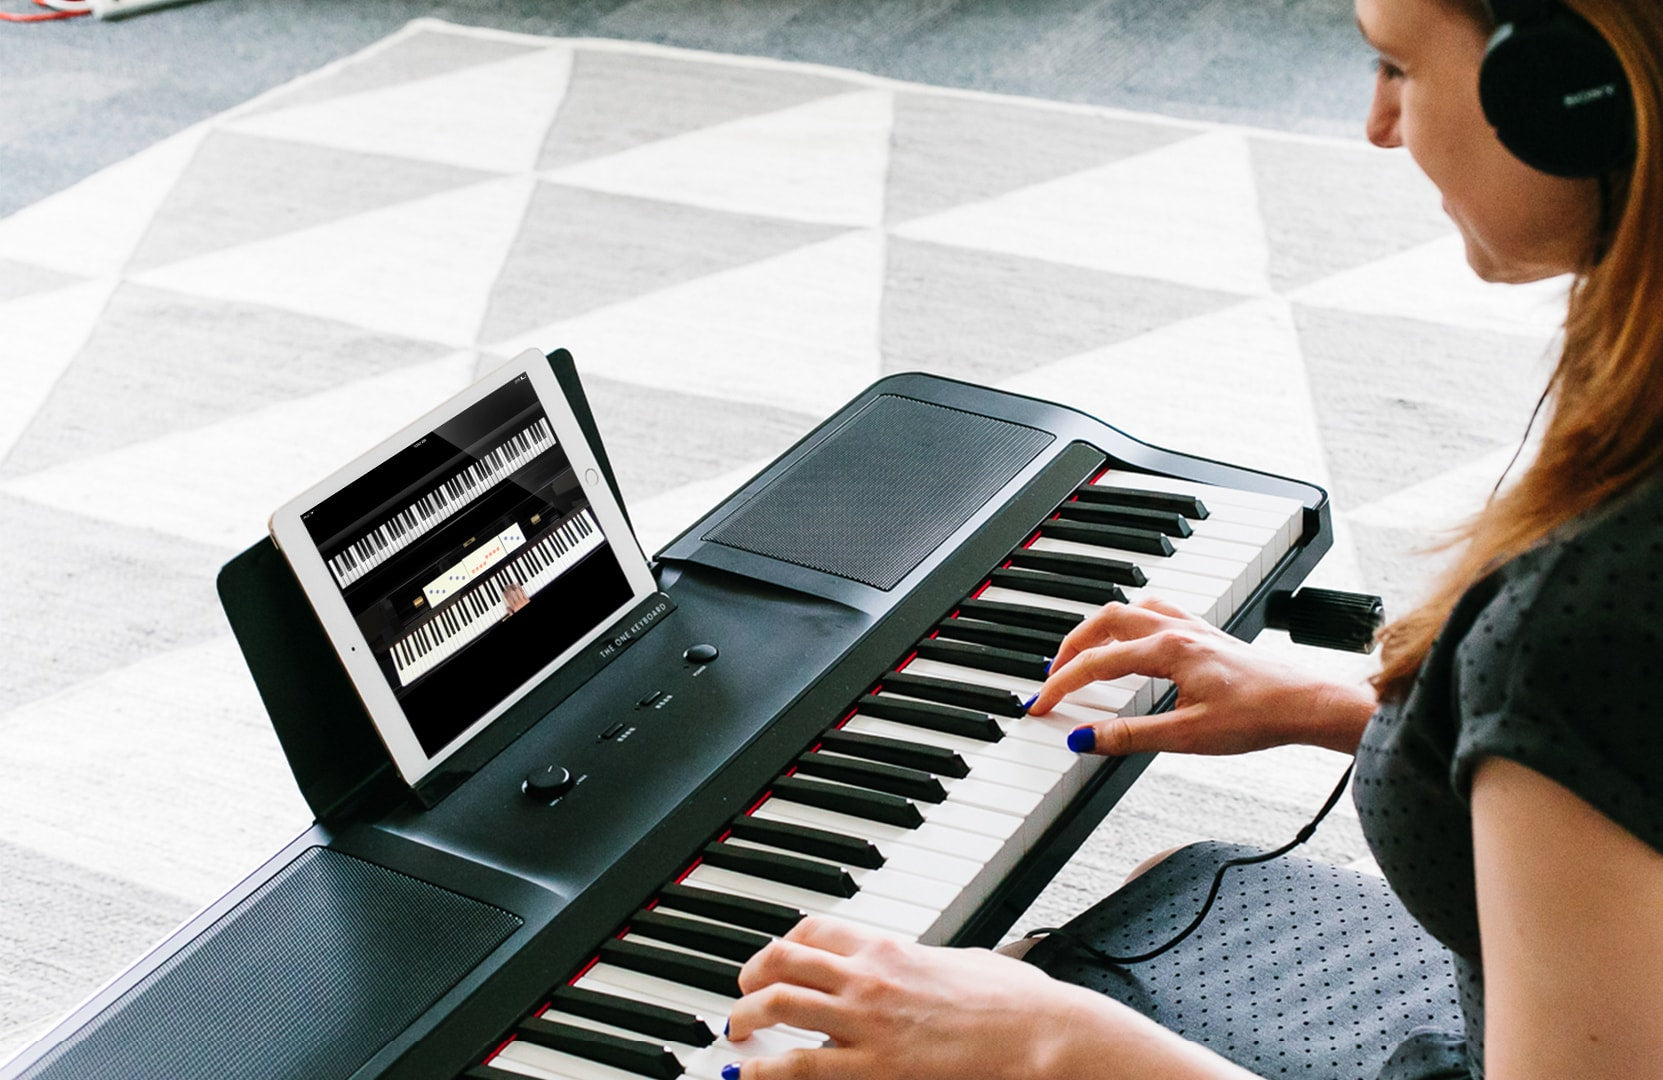 casio keyboard lessons for beginners pdf